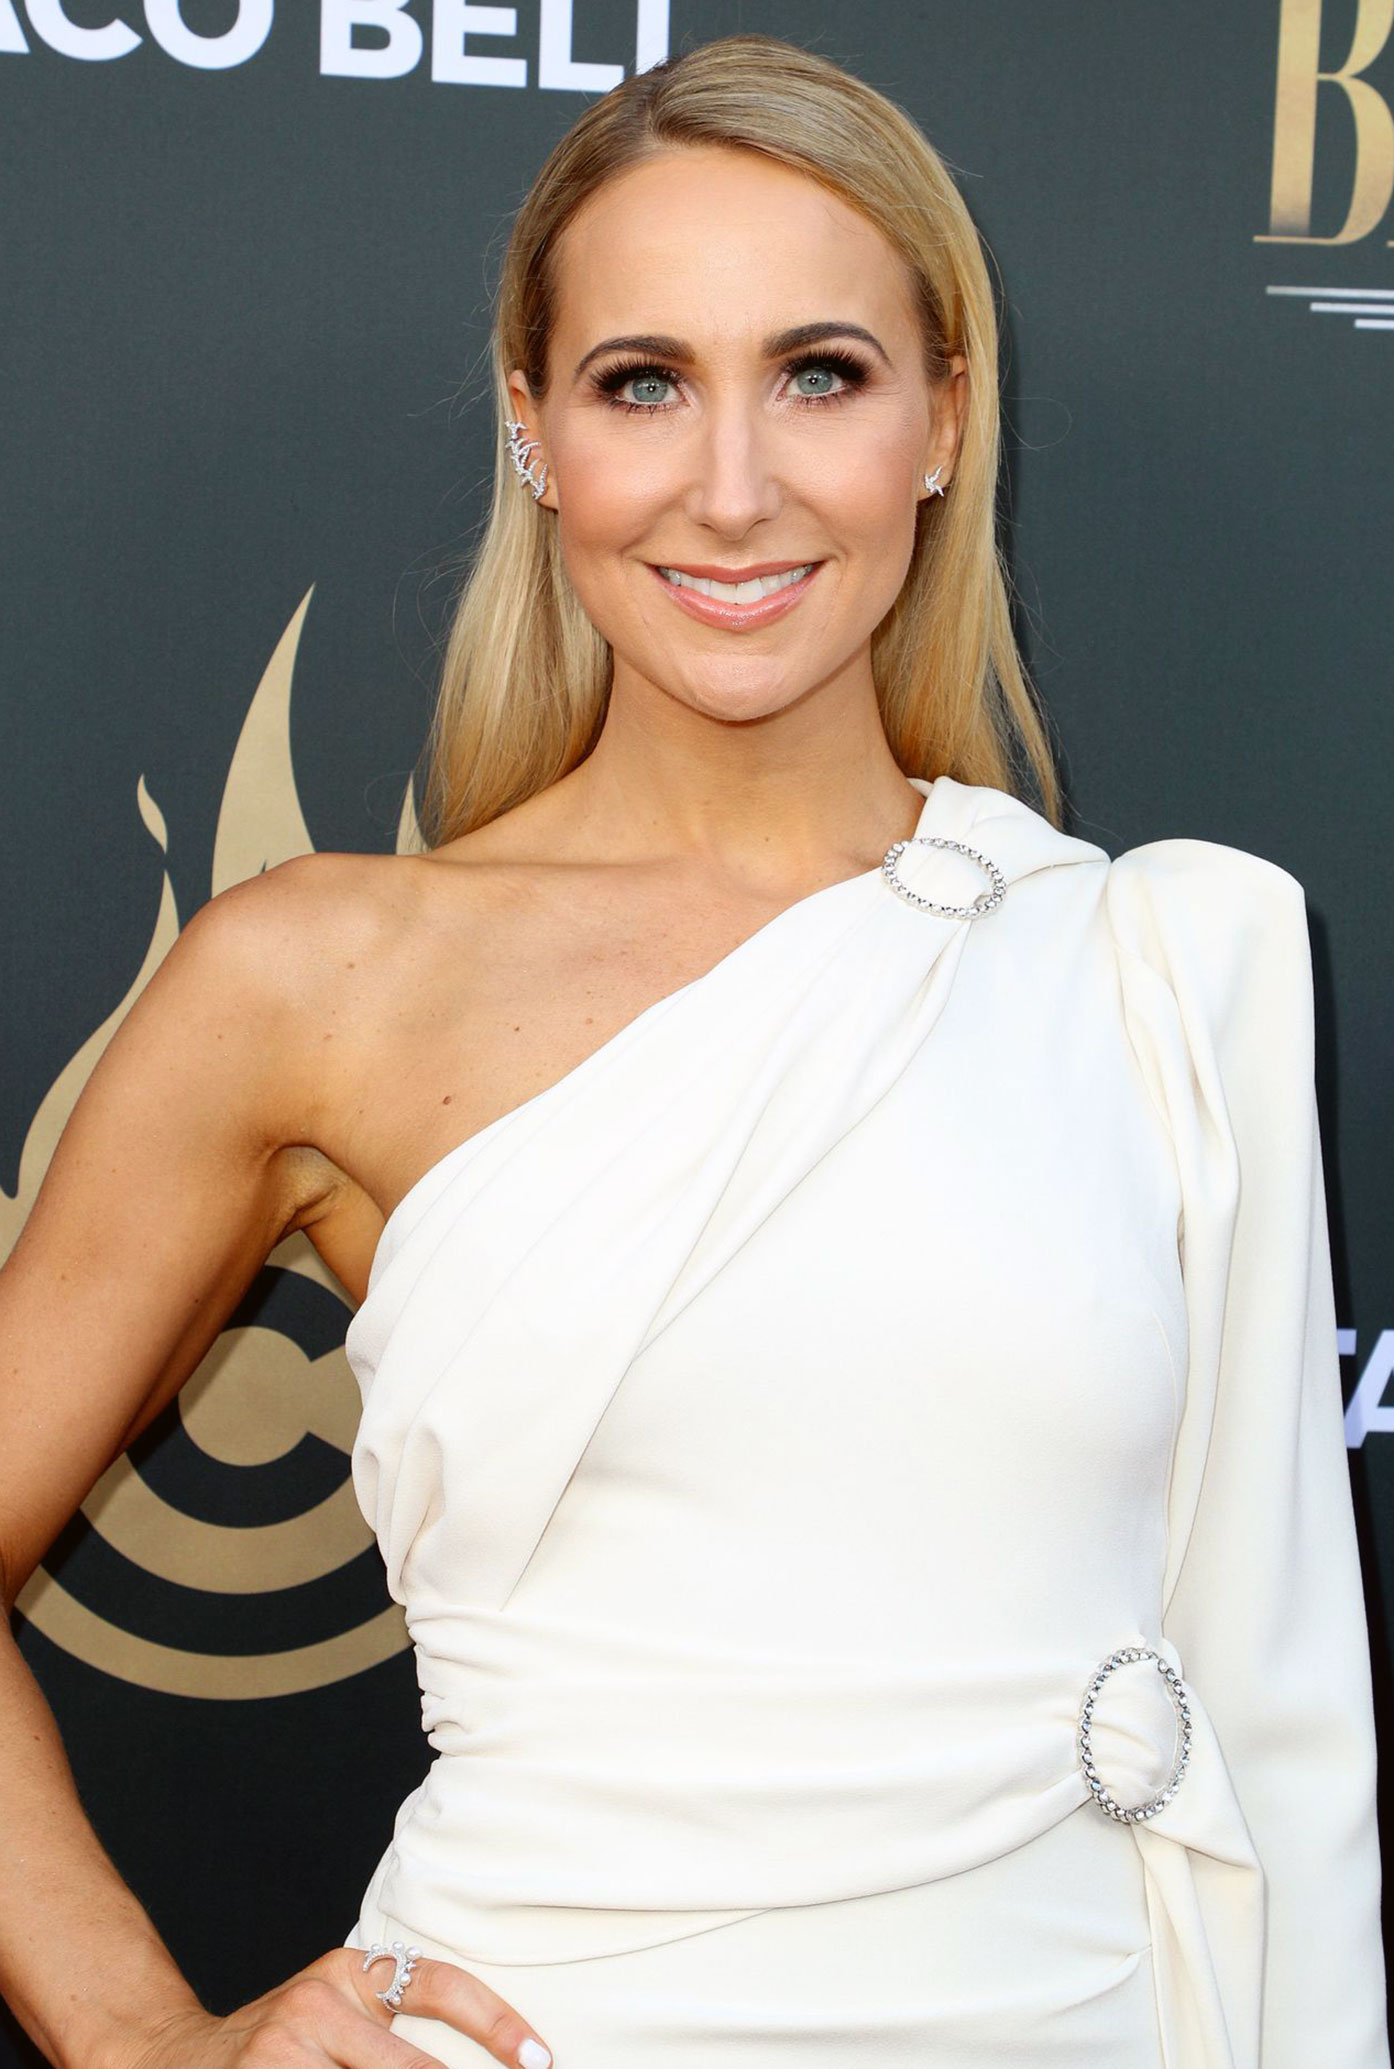 Nikki Glaser Nude Pics and Porn Video - 2020 UPDATE ...